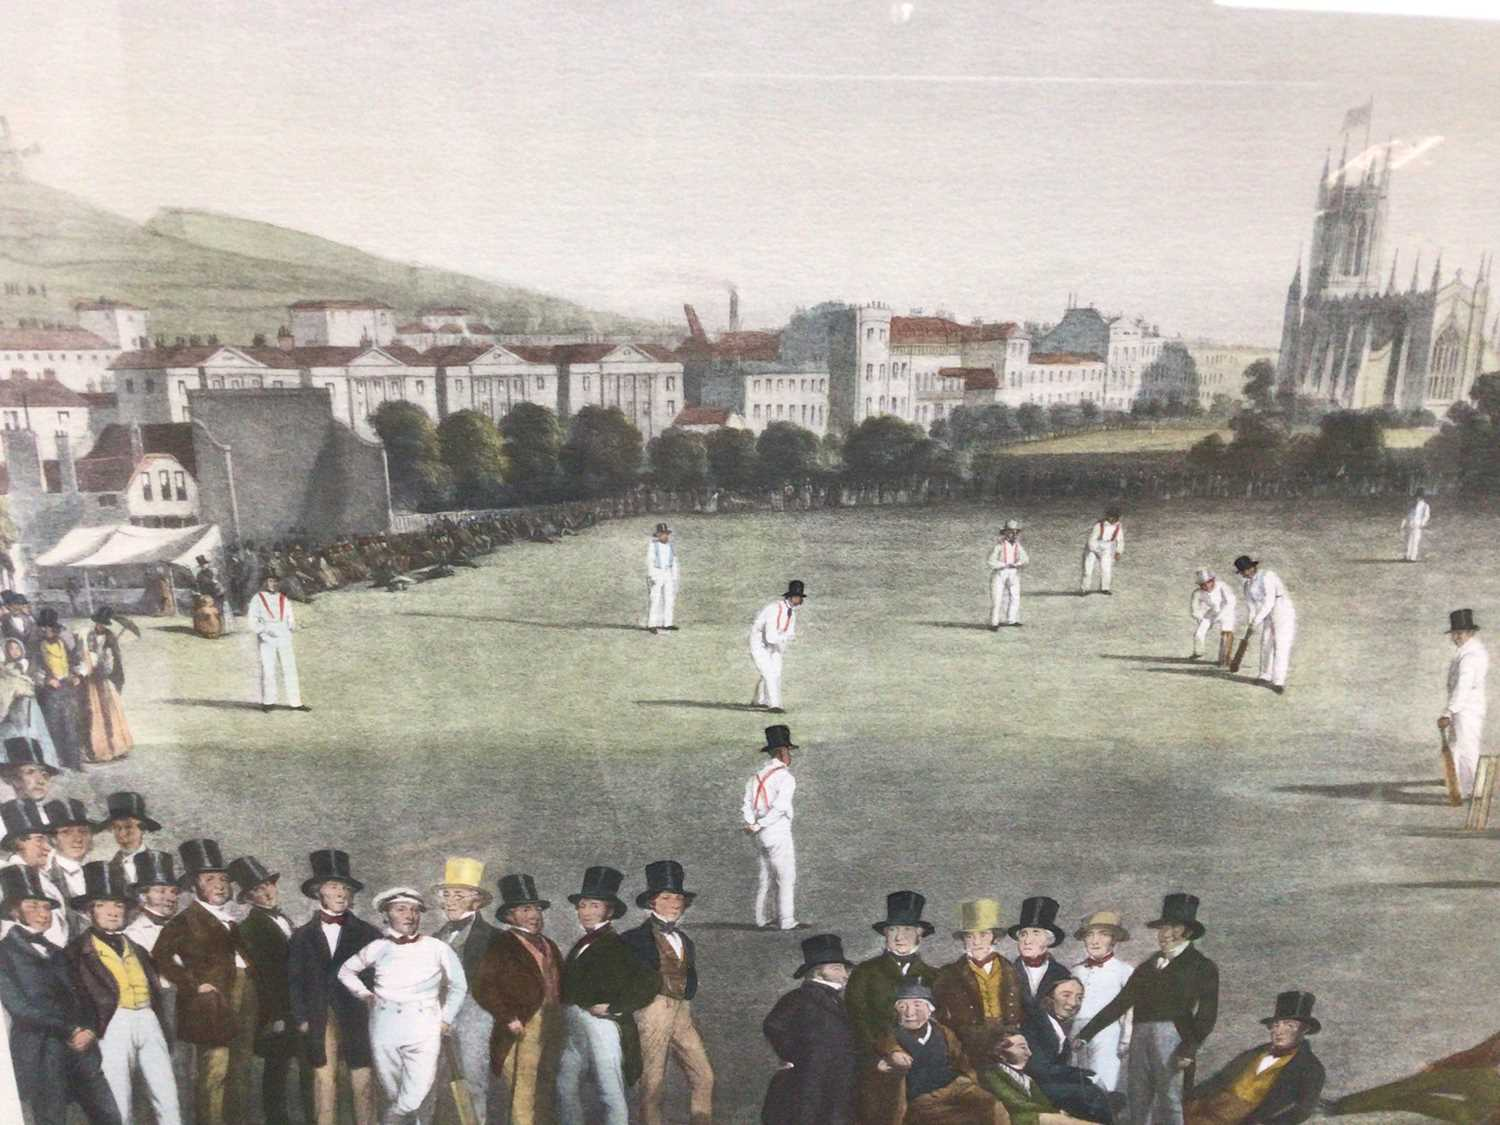 19th century-style coloured print - The Cricket Match between Sussex & Kent, at Brighton, 48cm x 66c - Image 6 of 8